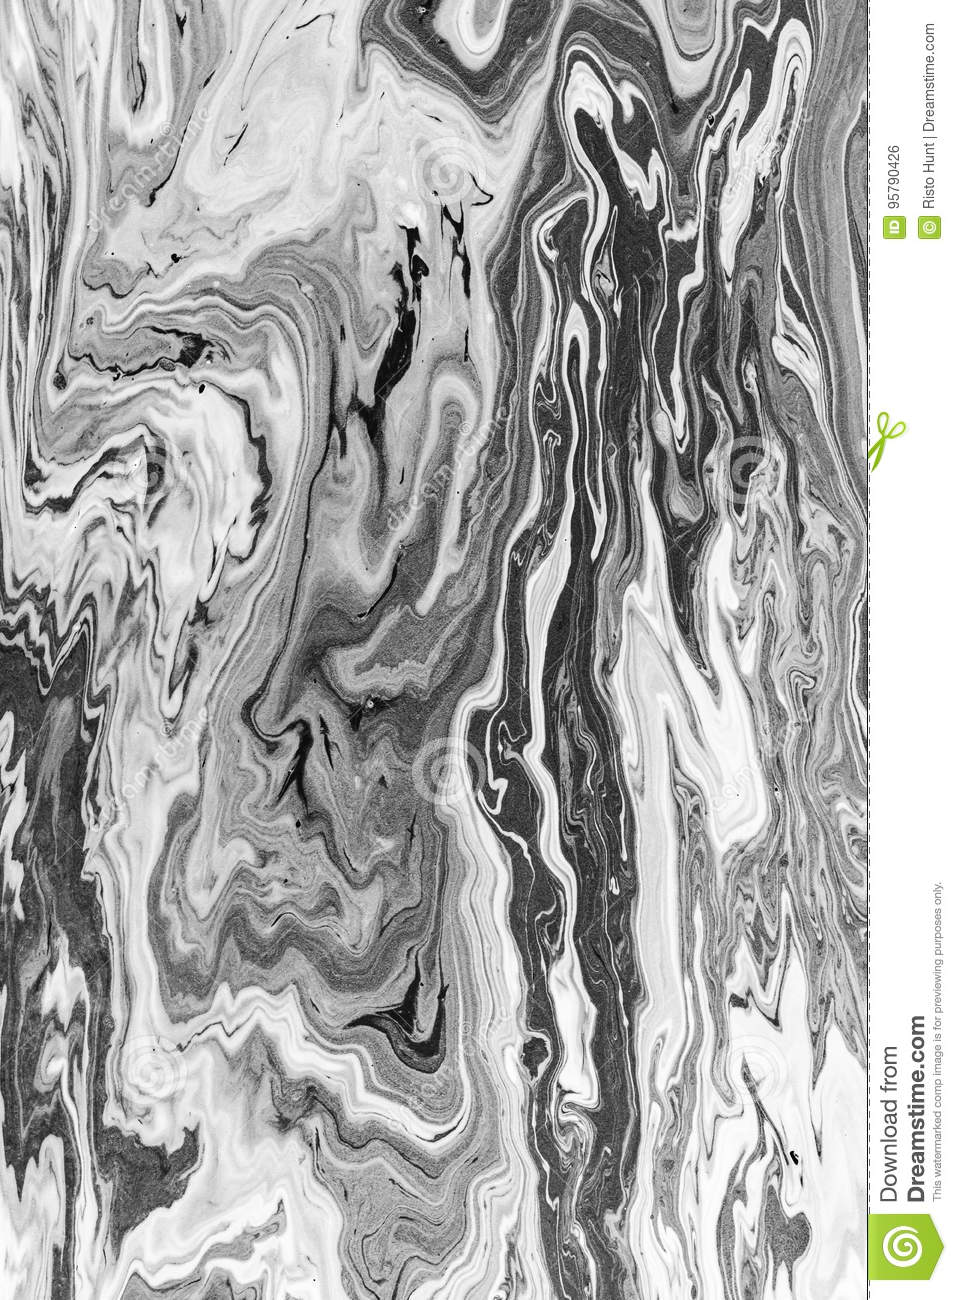 Abstract black and white digital art background